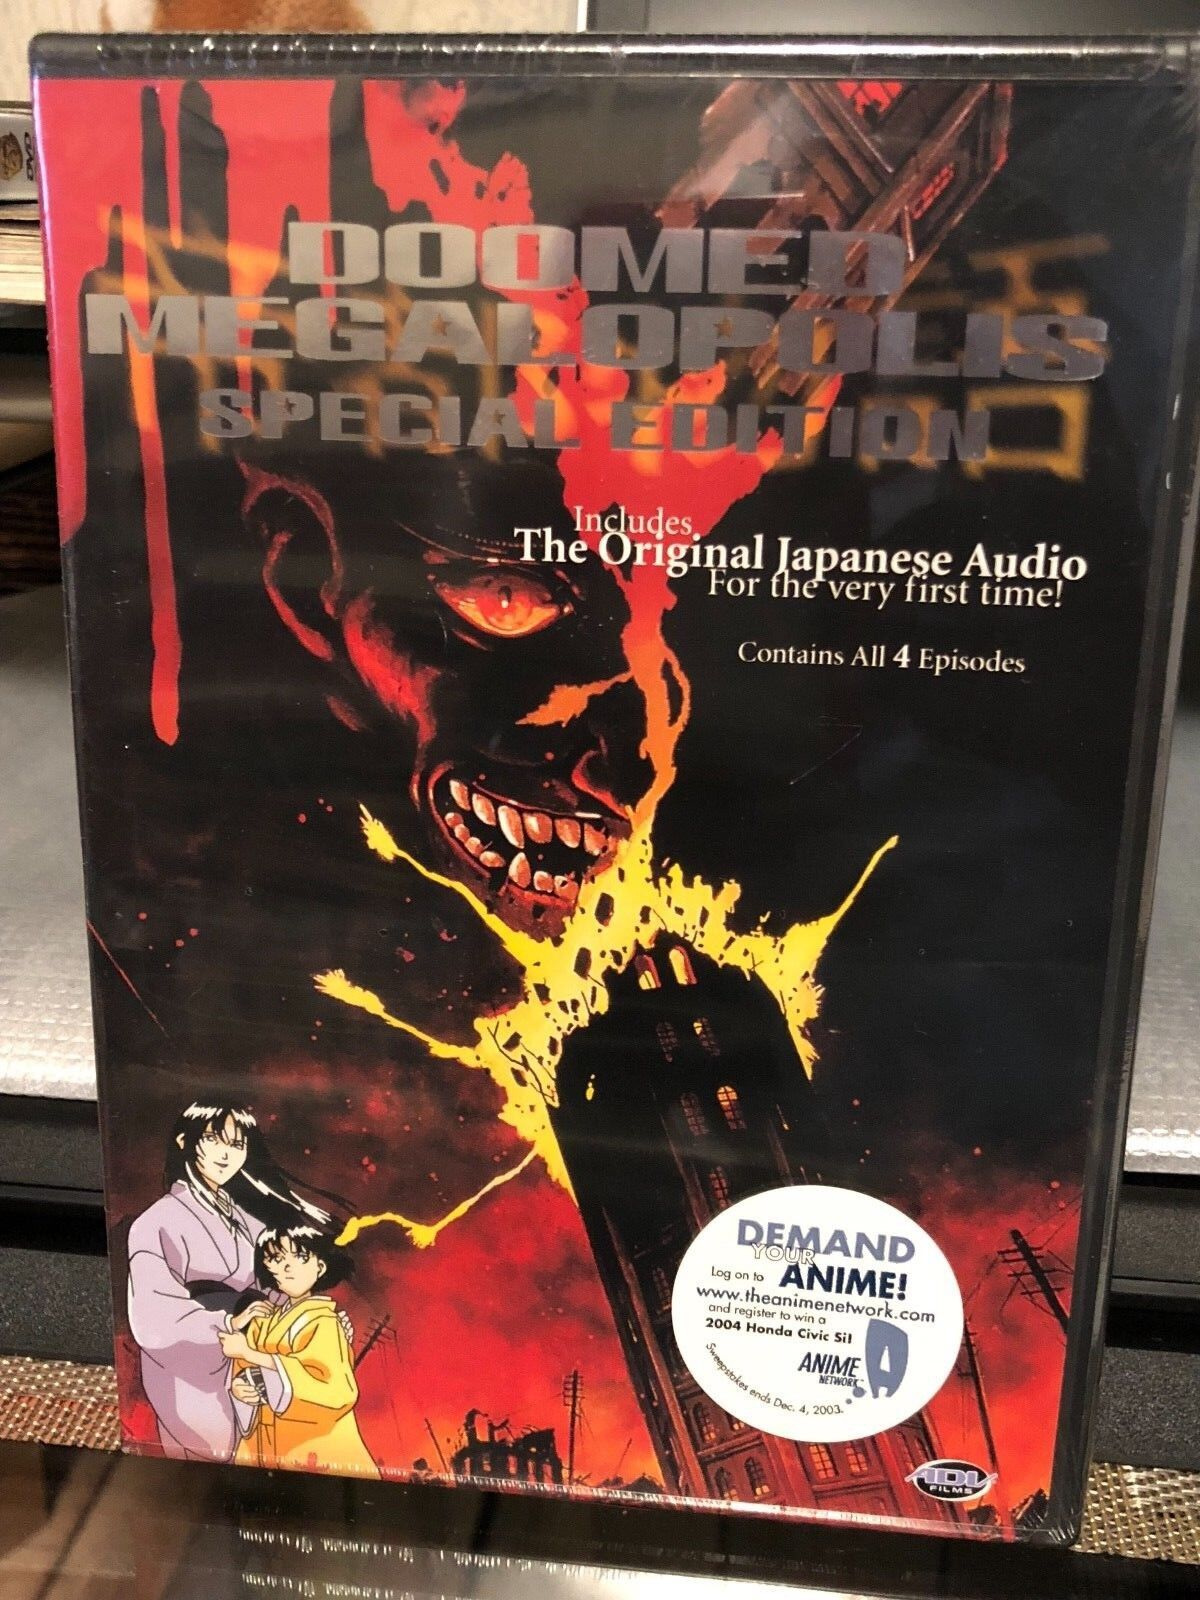 Doomed Megalopolis (DVD) Special Edition! English & Japanese Lang! BRAND NEW!